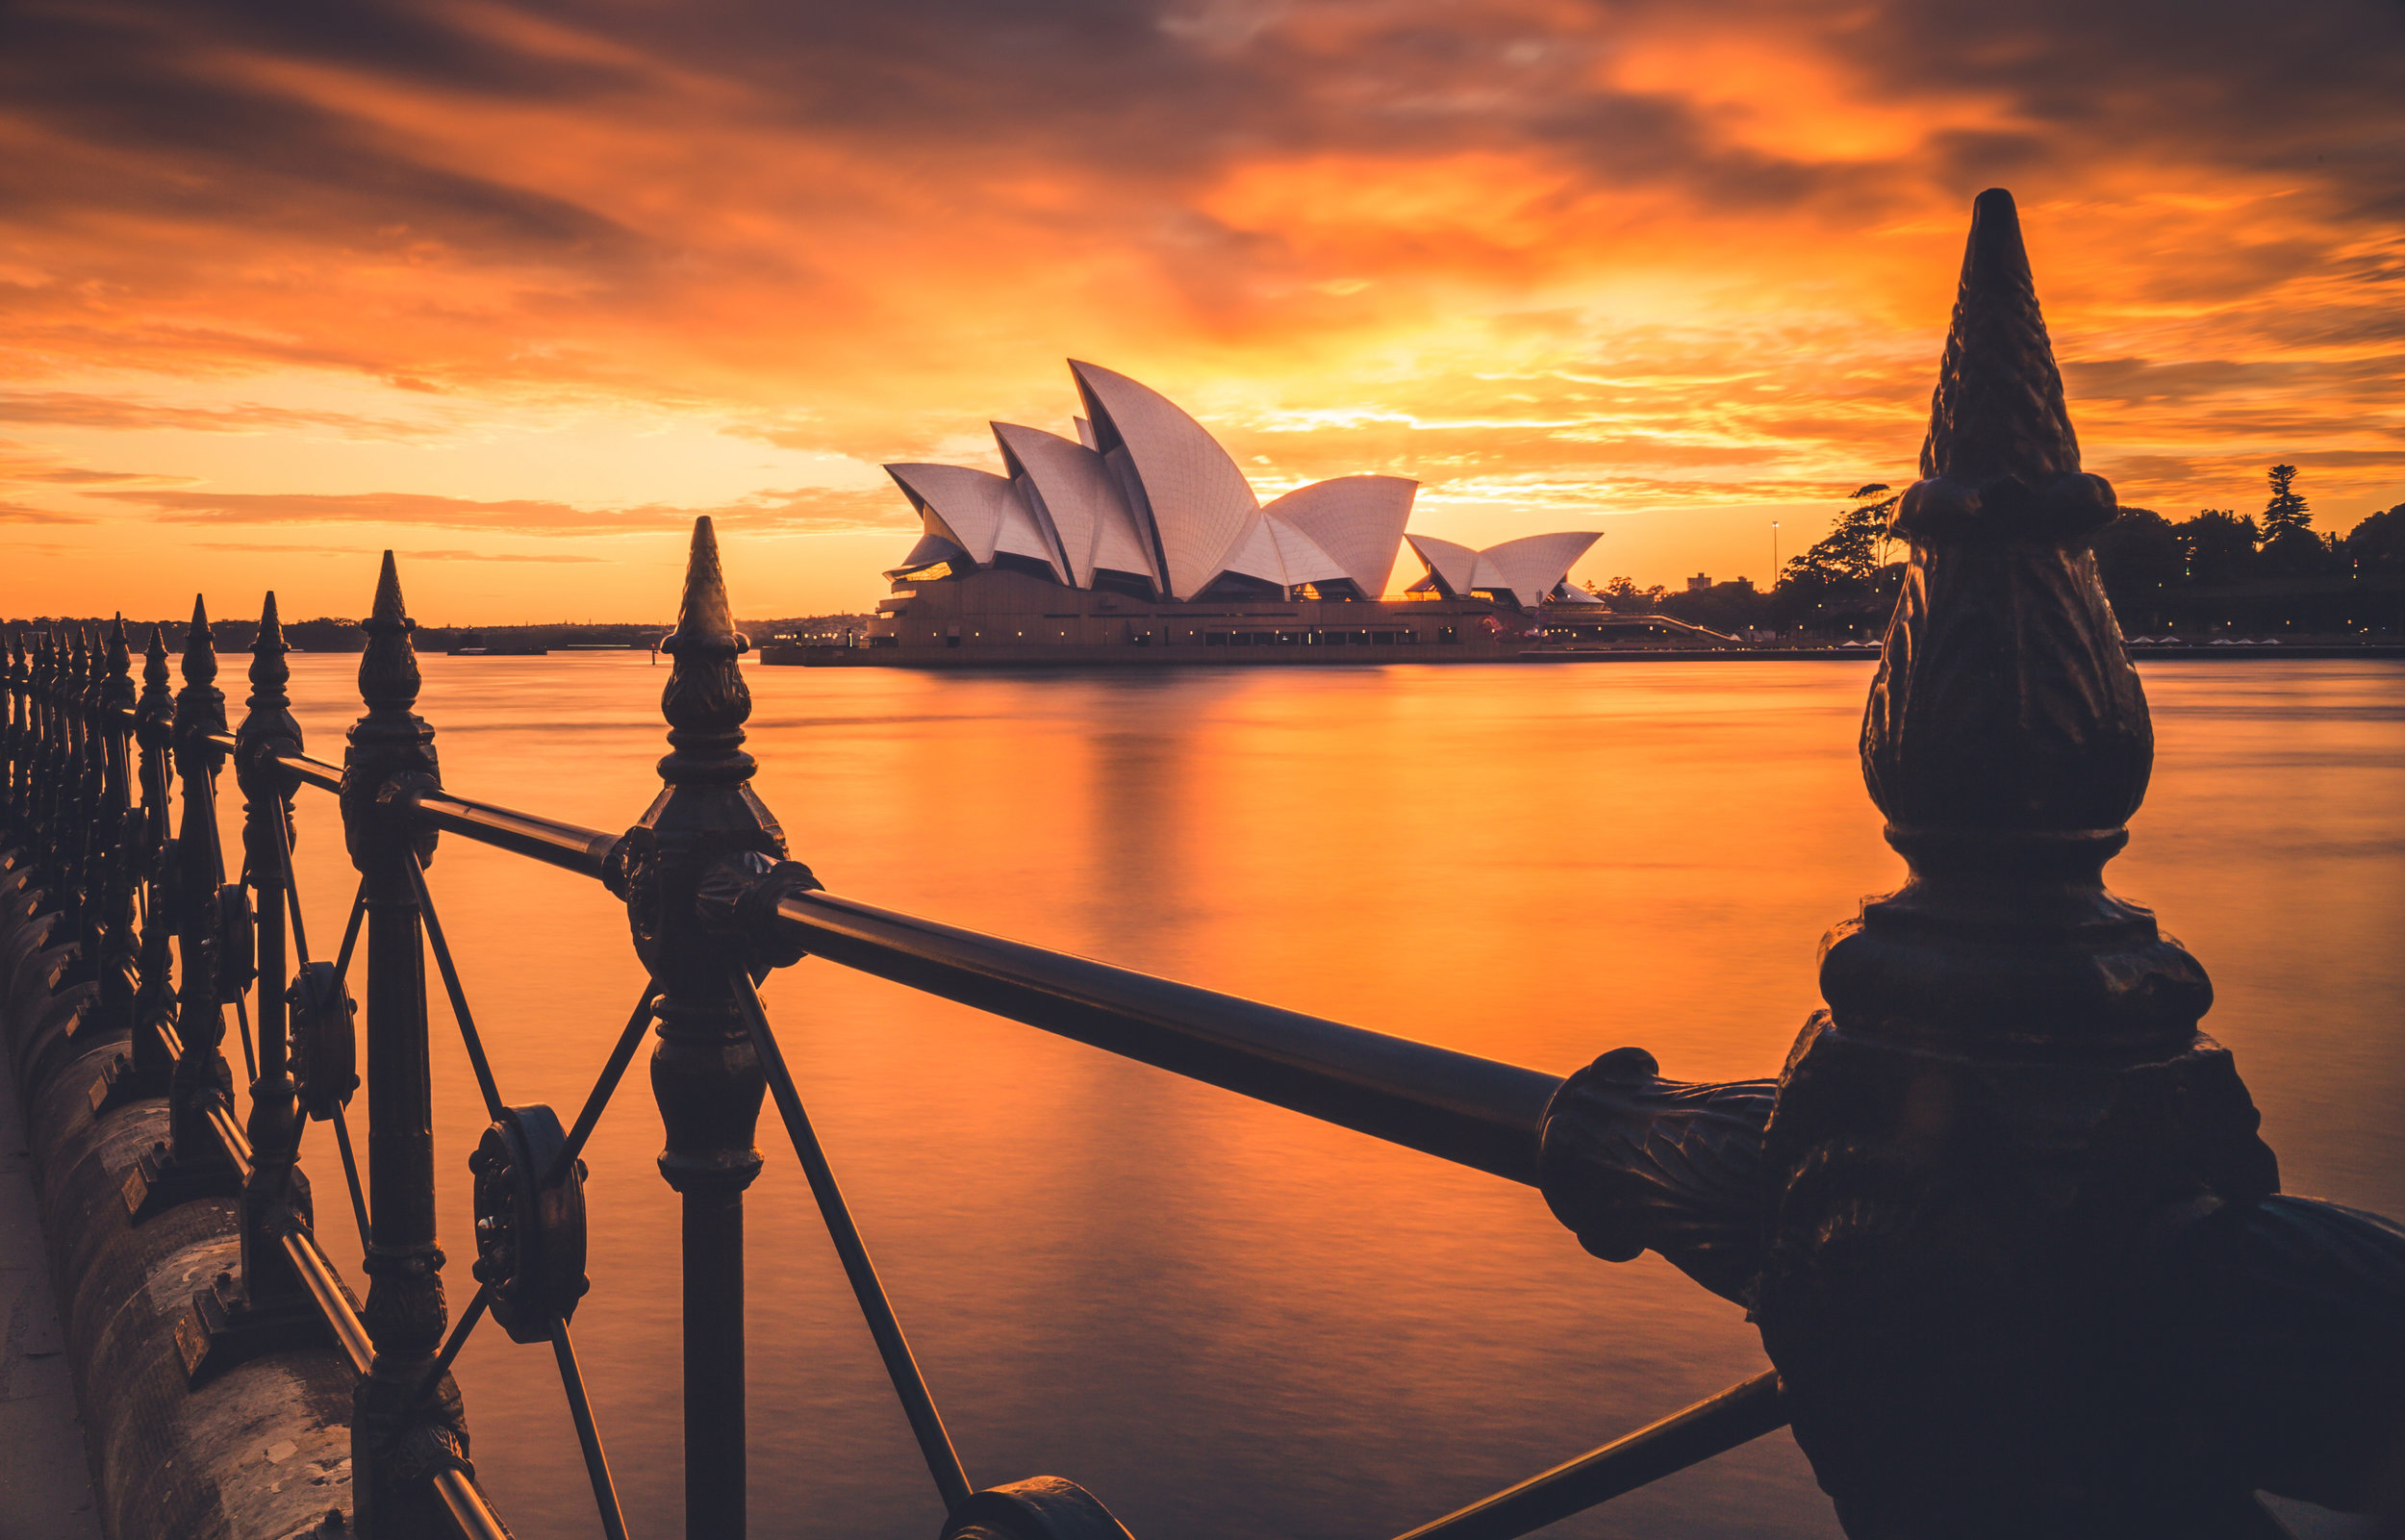 West Side Story at Sydney Opera House - Package includes 2 nights accommodation, B Reserve ticket to West Side Story at Sydney Opera House (21 Aug - 6 Oct 2019), options to extend and upgradePricing from: $335*pp (NZD) twin shareSale ends: 2 Oct 2019Travel Period: Commenced 20 Aug 2019 and completed 7 Oct 2019 (unless otherwise specified)